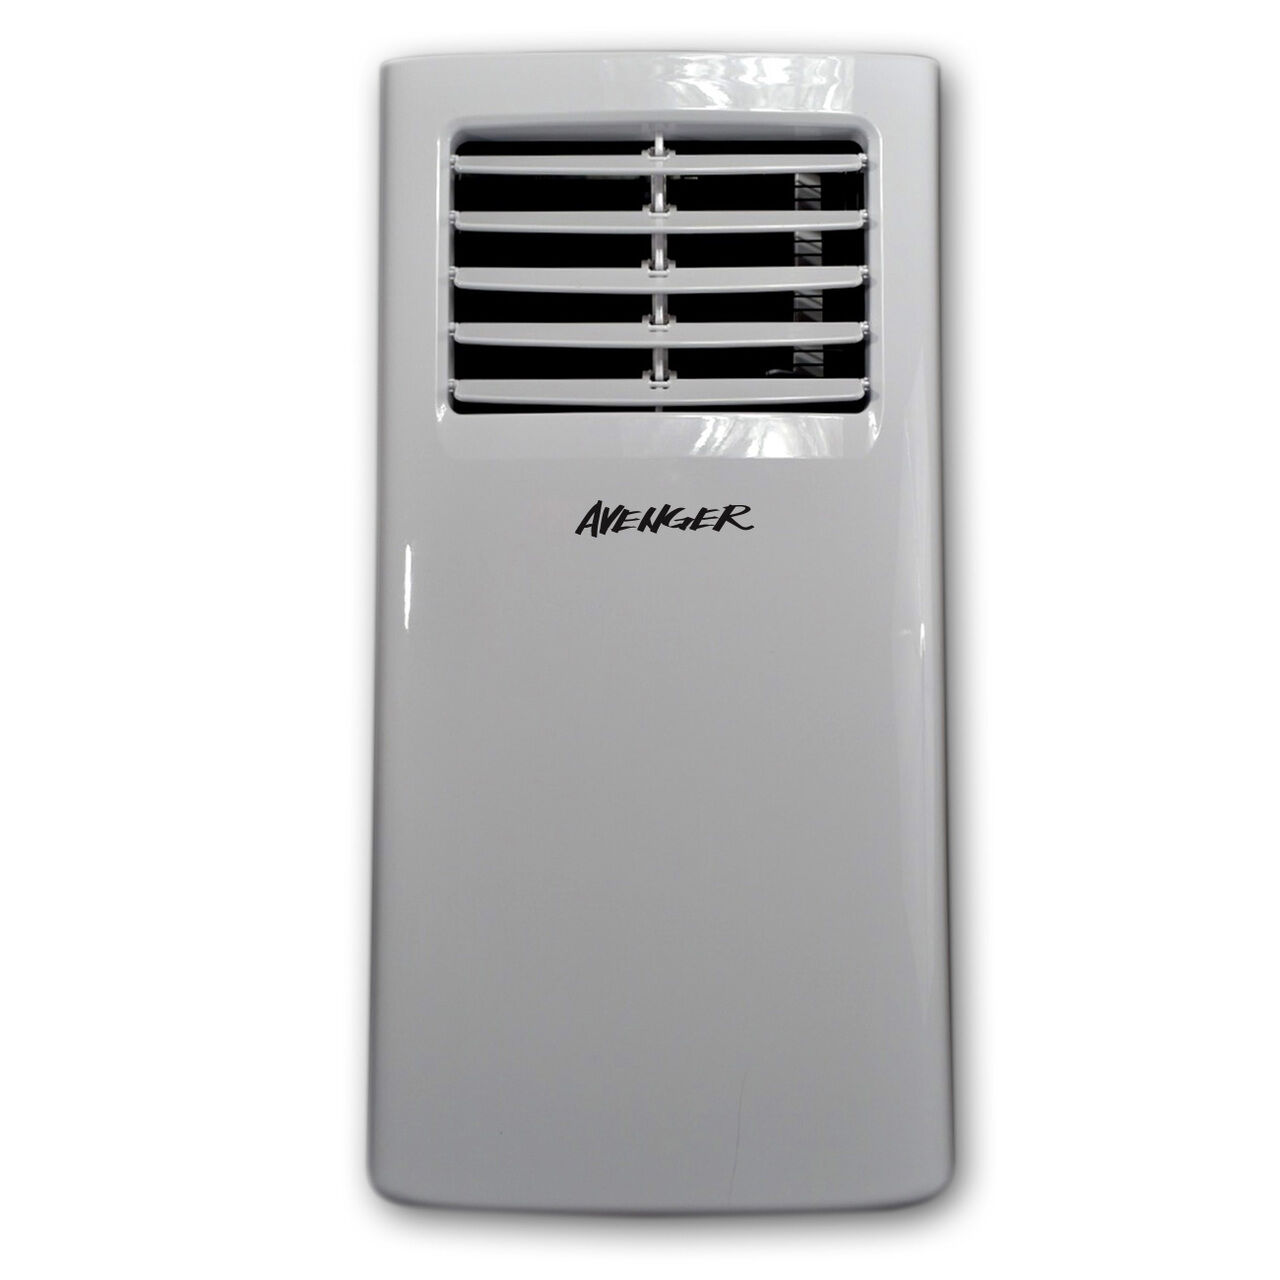 Arctic King 8,000 BTU Portable Air Conditioner with Remote